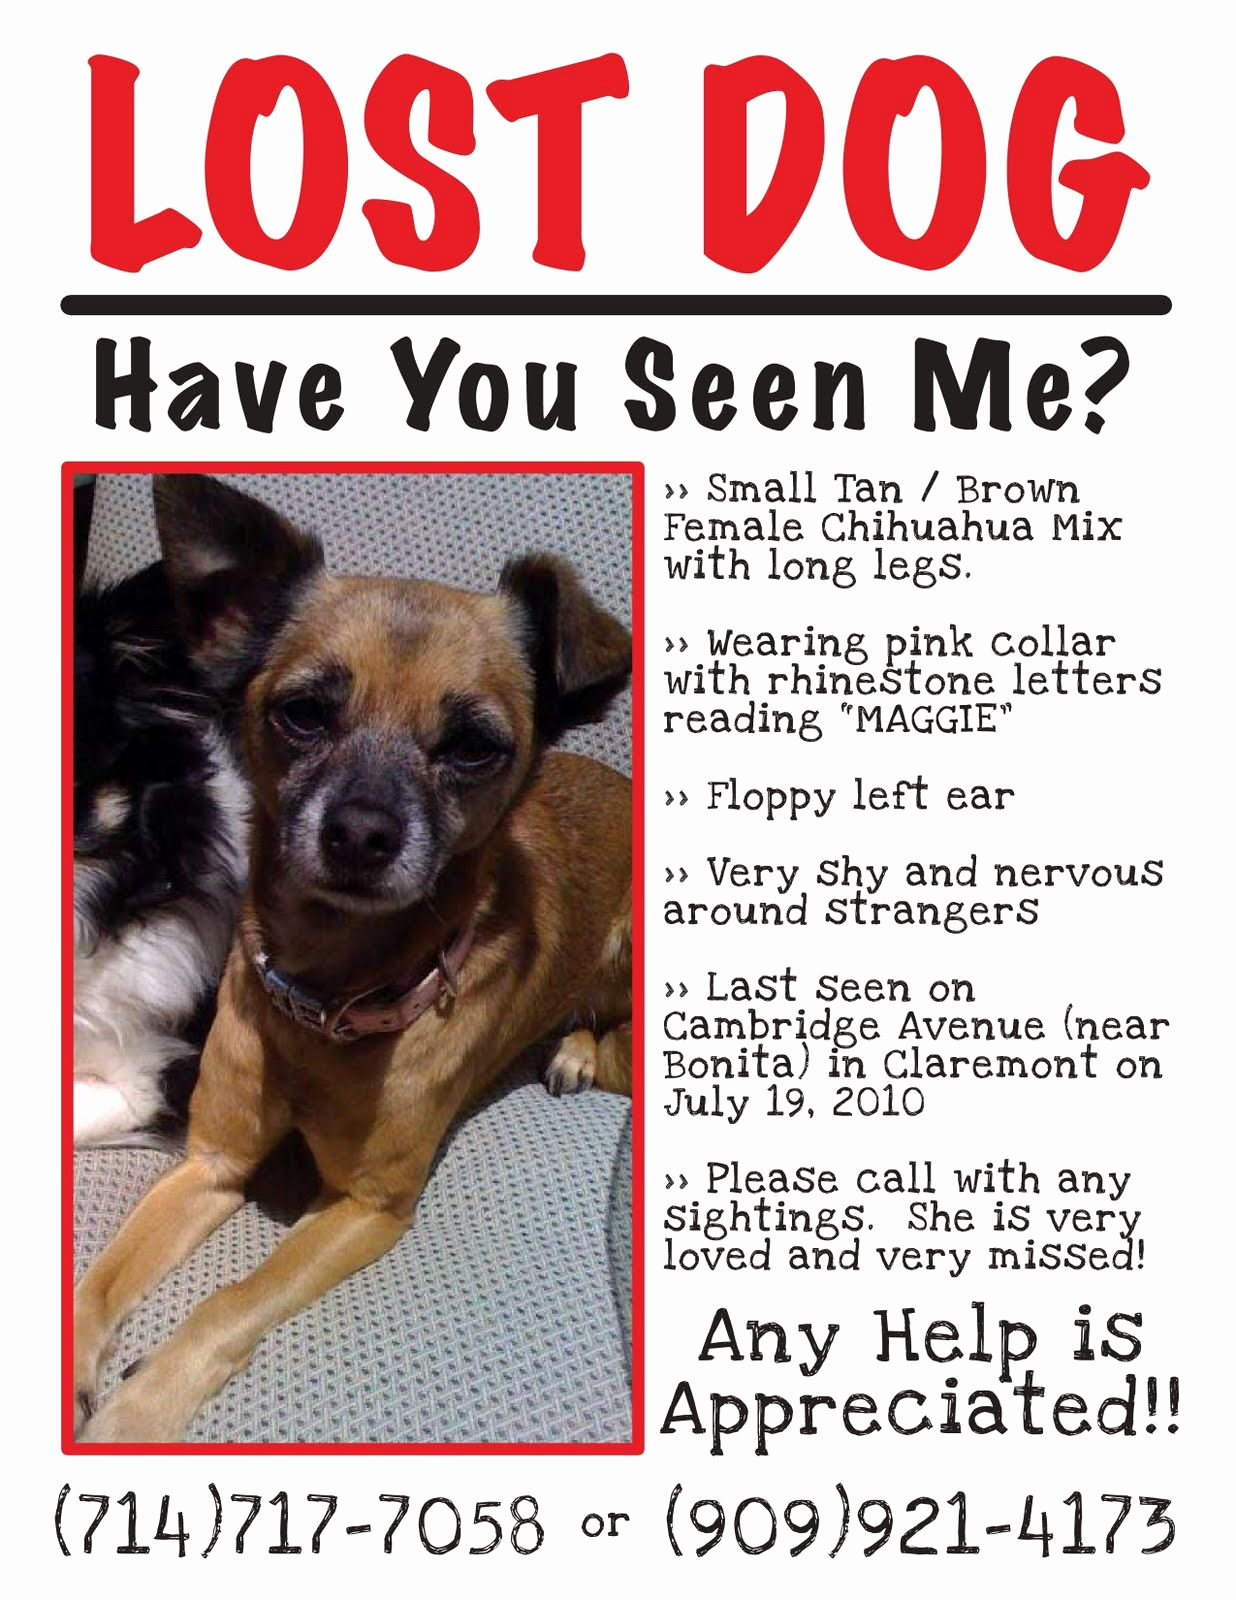 Missing Dog Flyer Template Elegant Flyers for Missing Pets In Texas Lost Dog Flyer